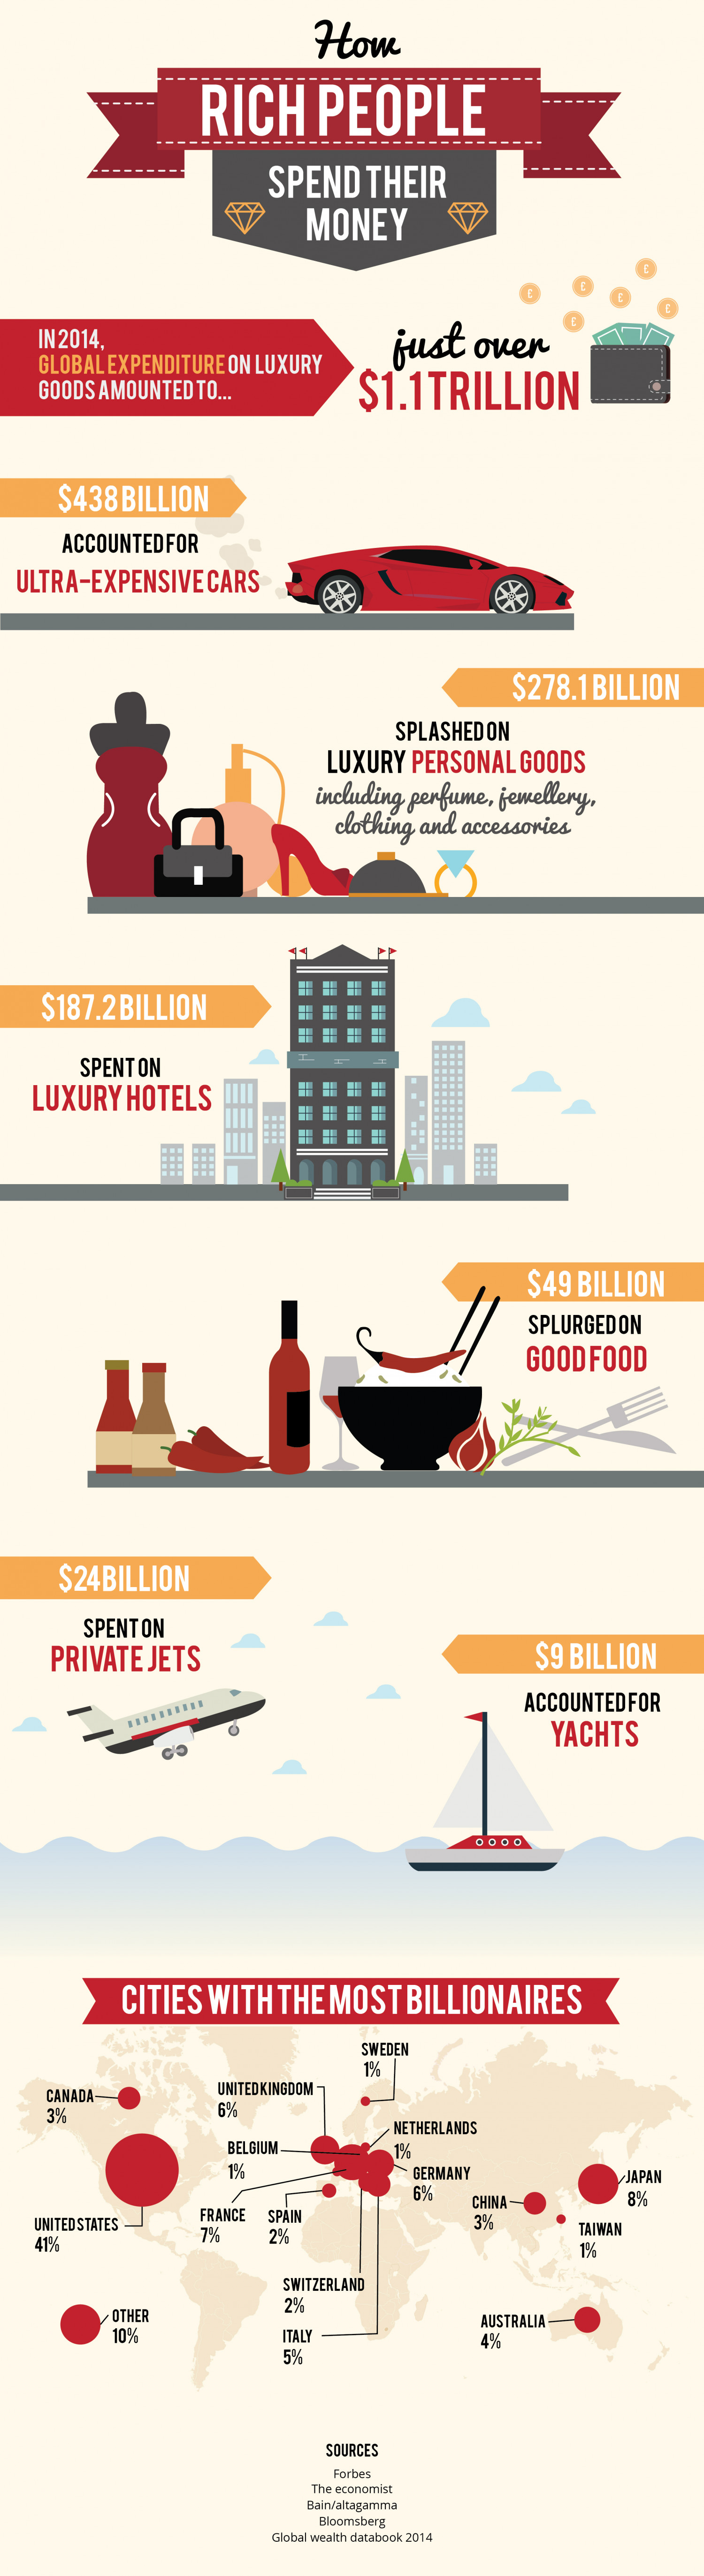 How Rich People Spend Their Money Infographic